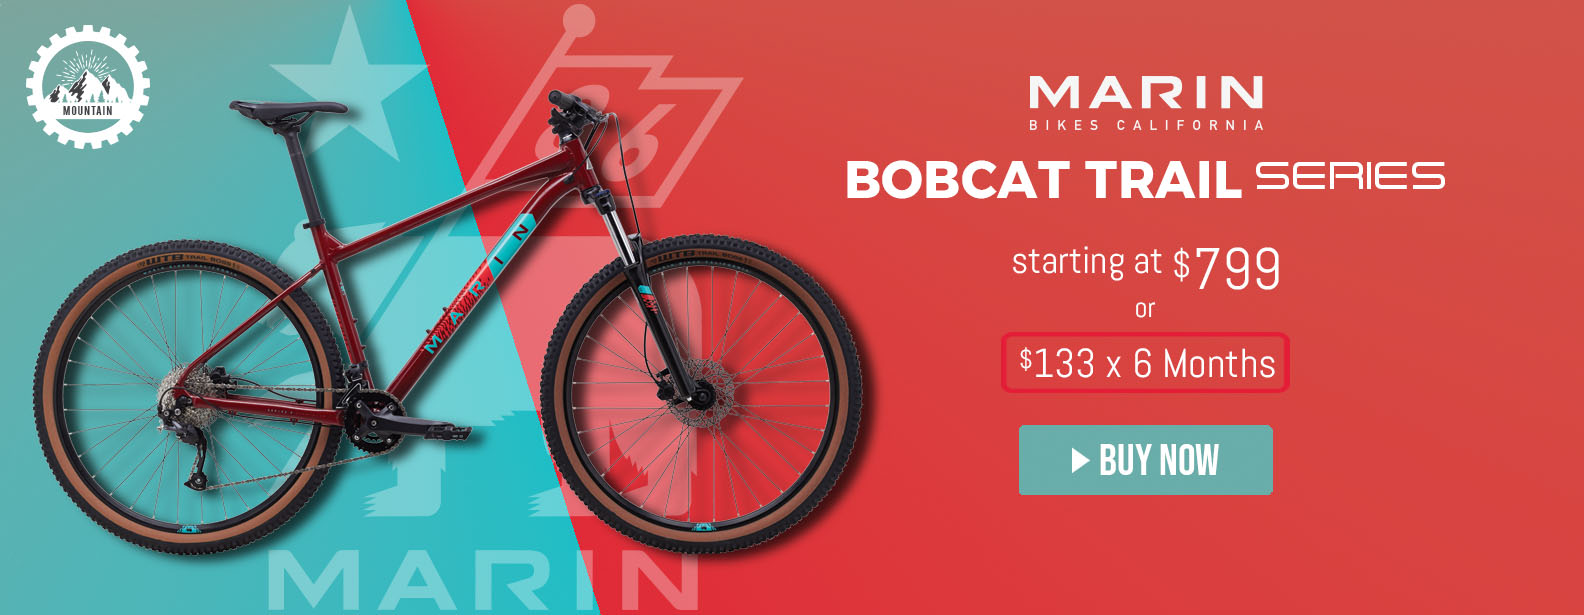 Marin MTB Bobcat Trail Series